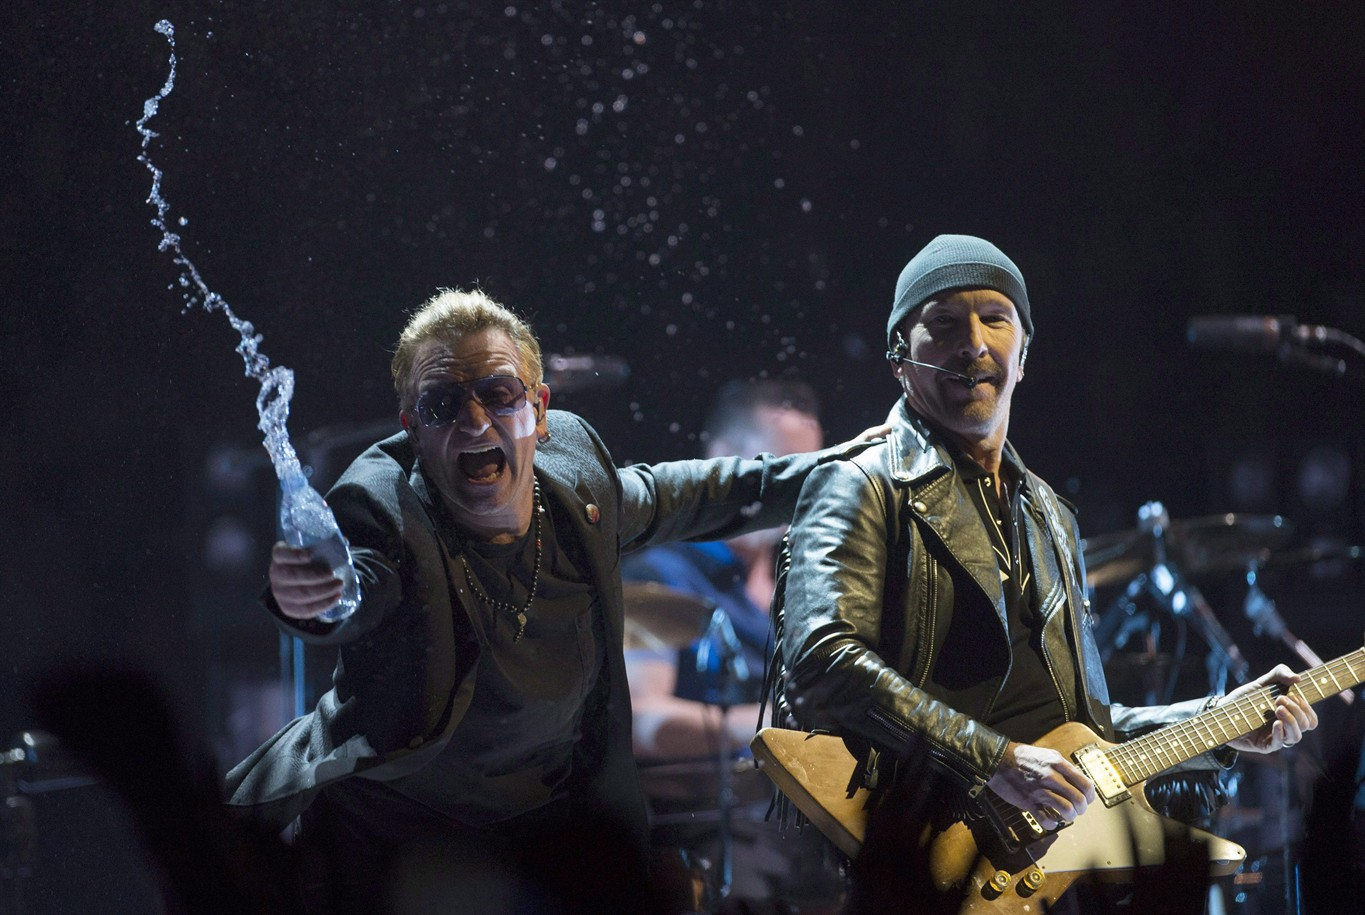 U2 Joshua Tree tour kicks off in Canada